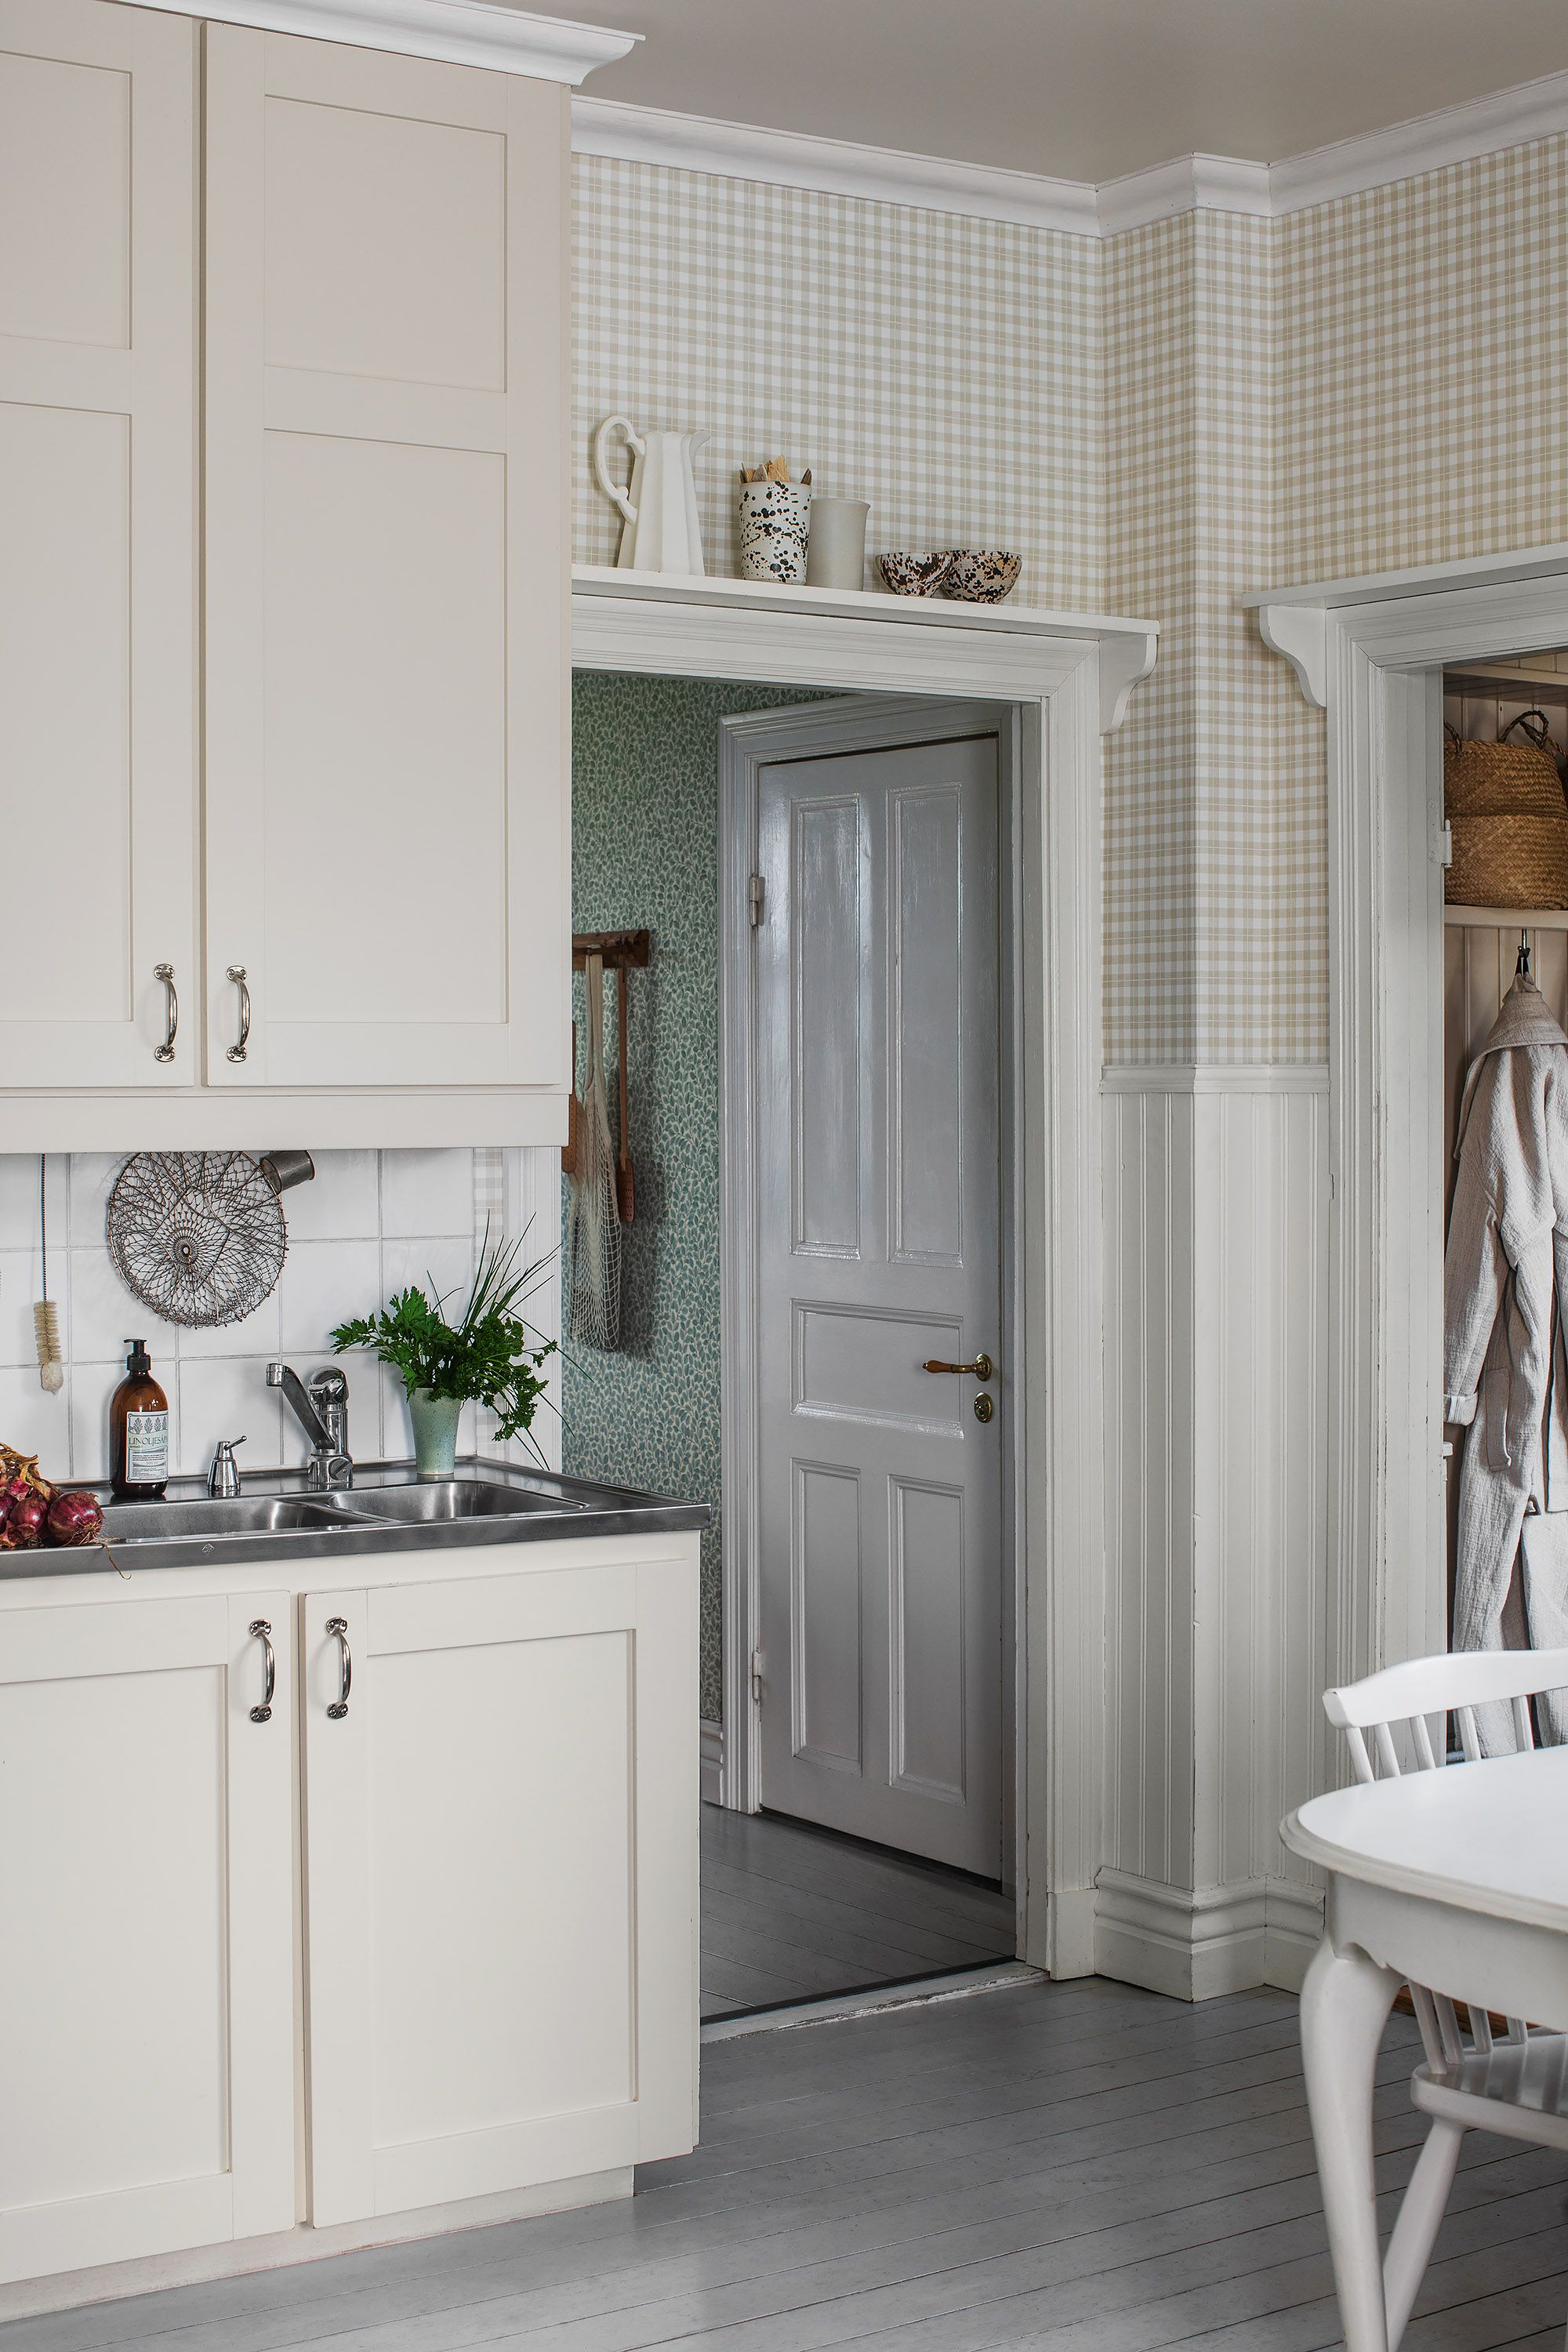 Adding a sweet and rustic vintage look to the surrounding